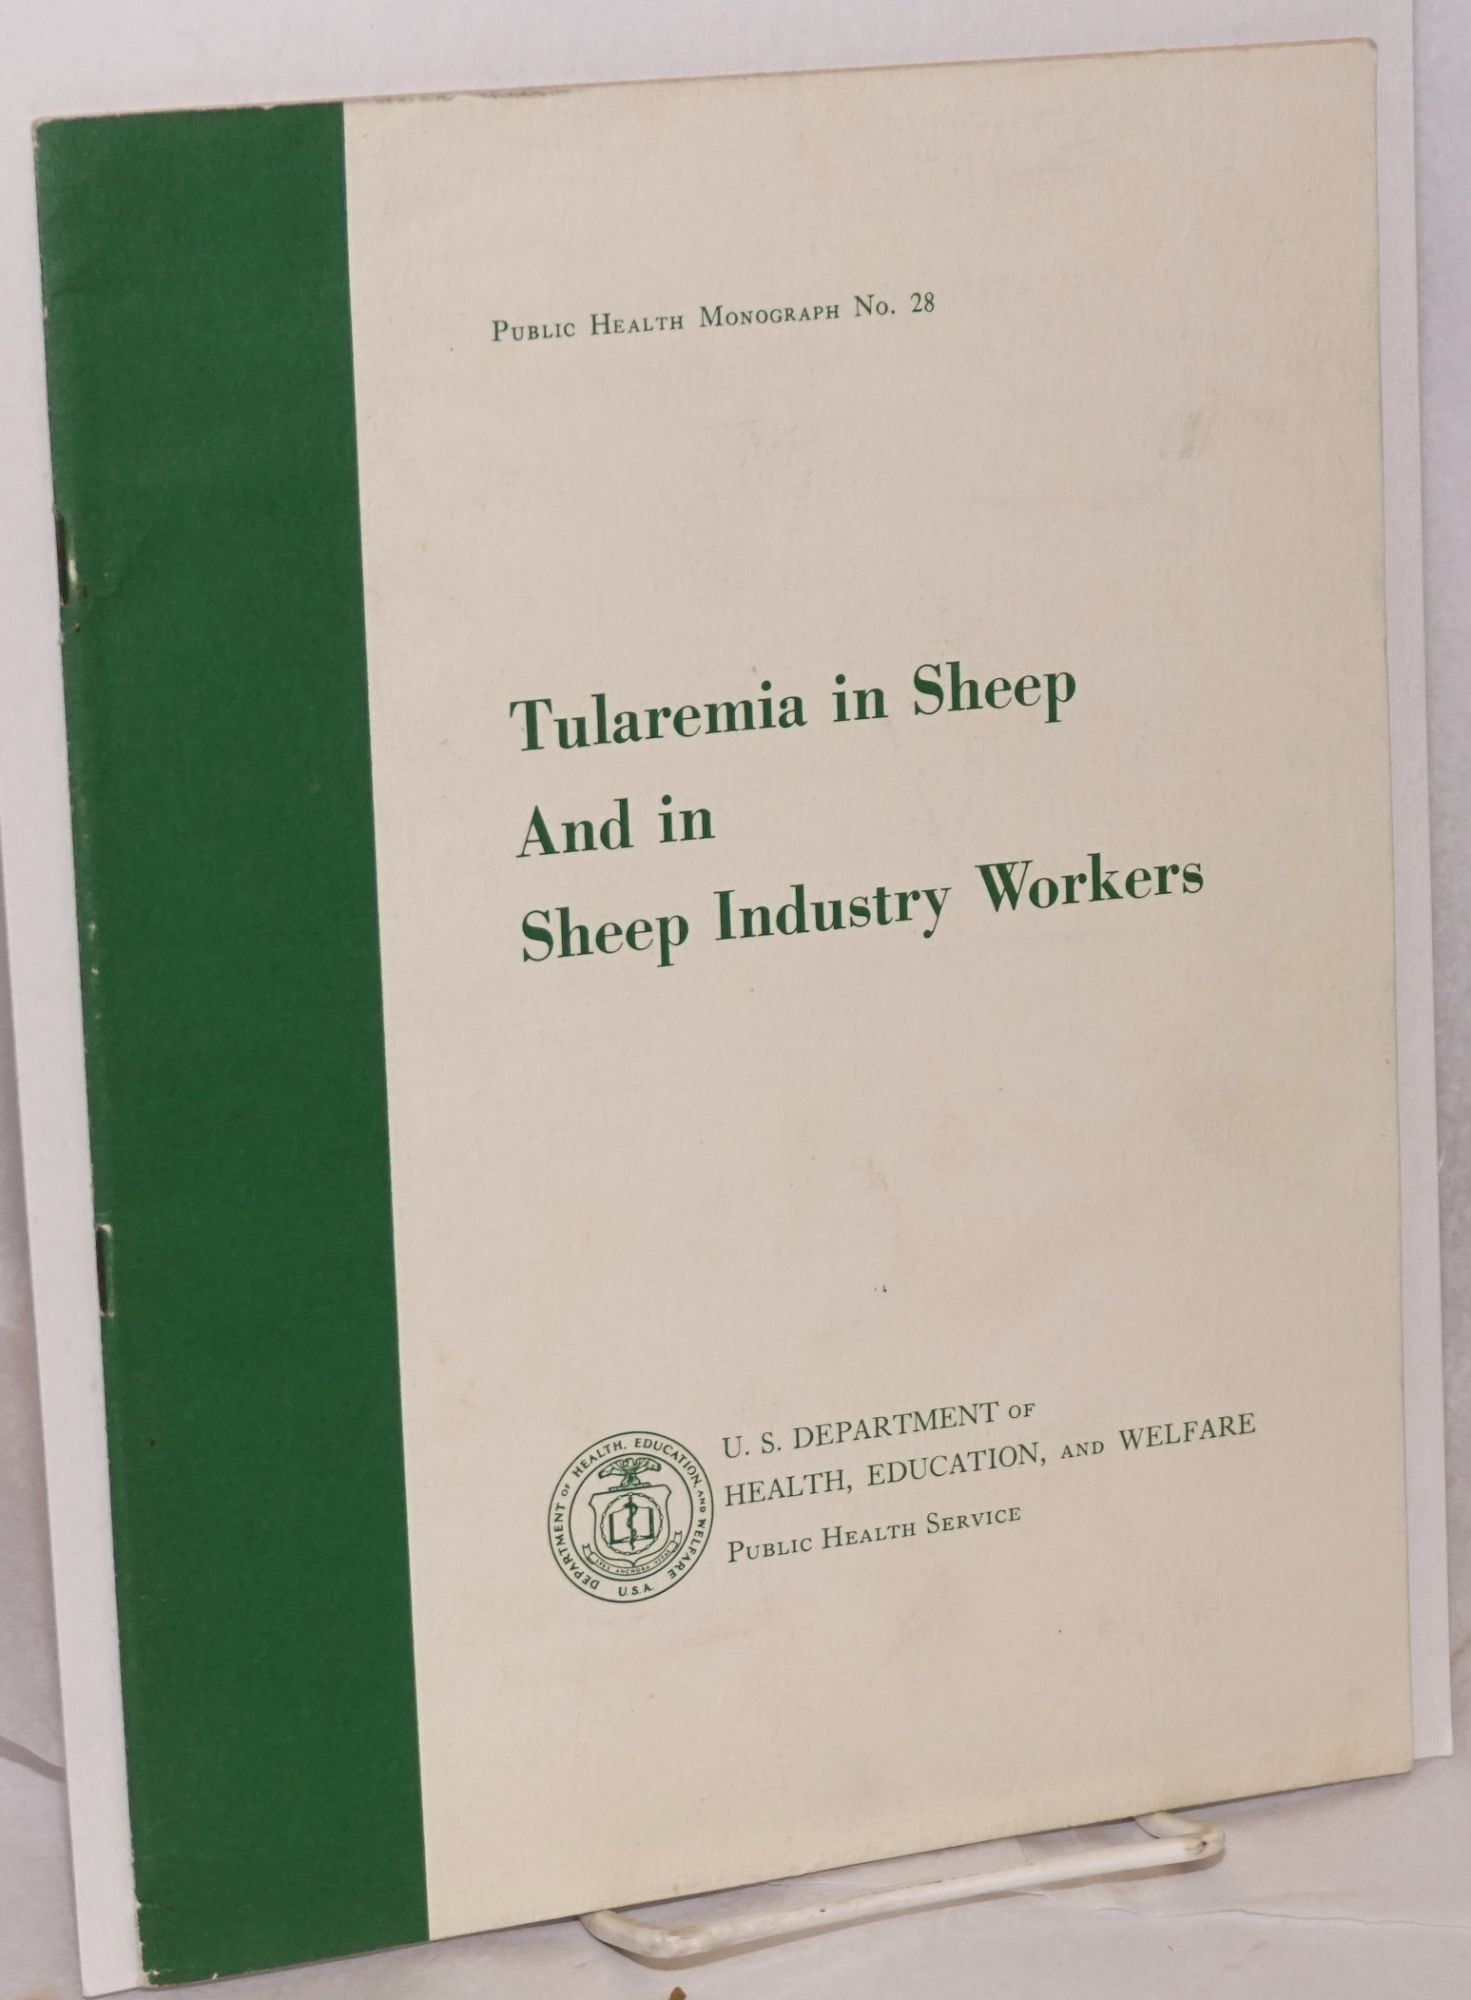 Tularemia in sheep and in sheep industry workers in Western United States Jellison, William L. [and] Glen M. Kohls Softcover 17p., wraps, minor creasing, paper slightly browned, 8.5x11 inches. Public health monograph no. 28. Tularemia was at this period being experimented wi